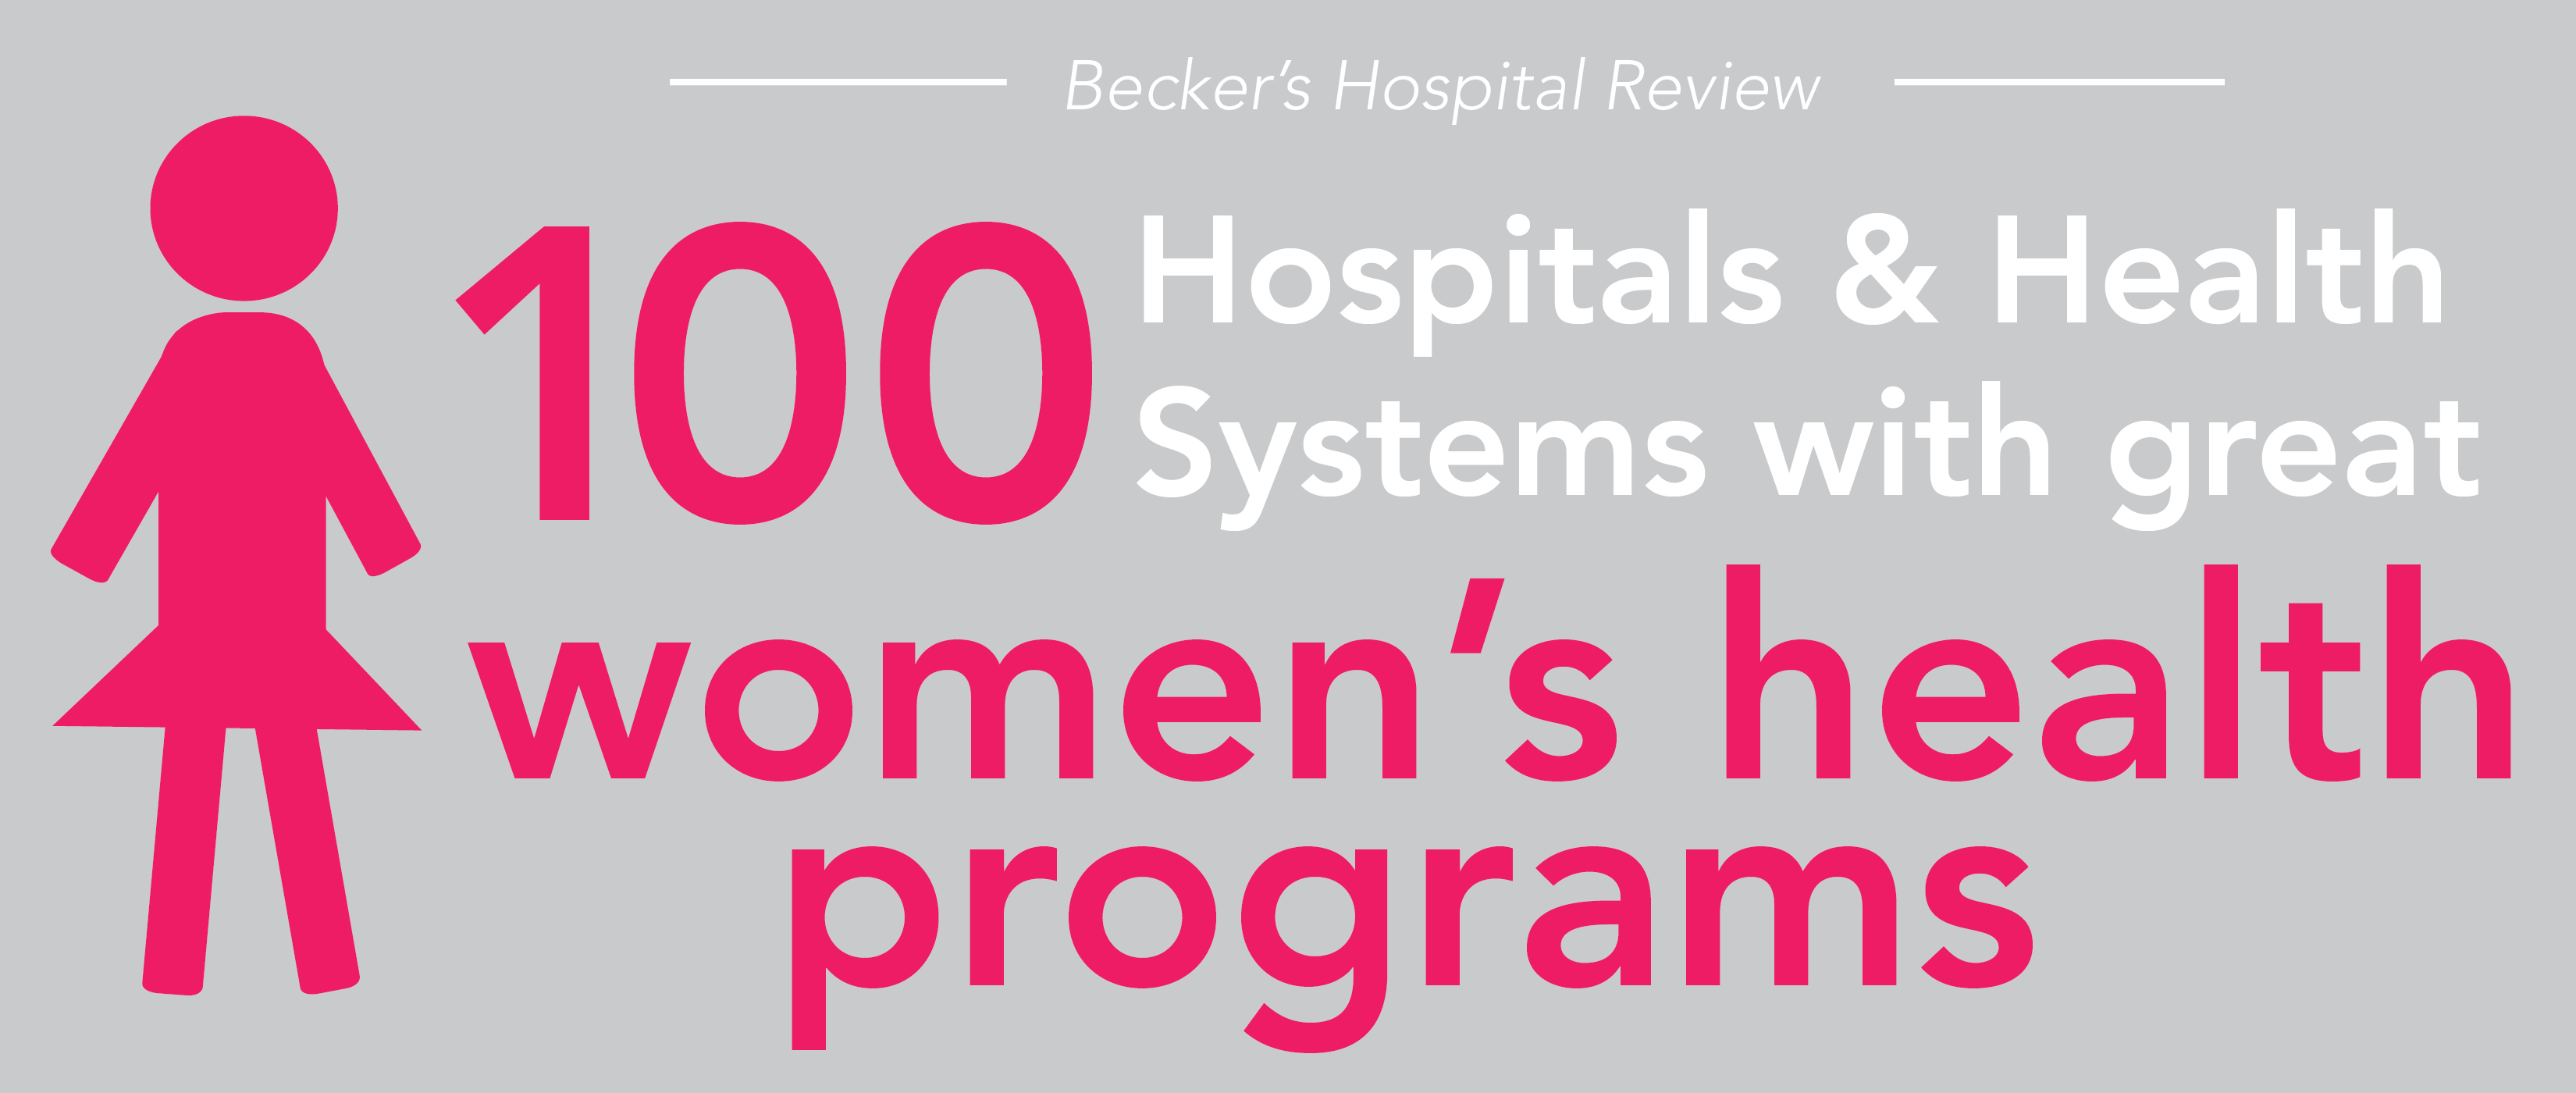 100 hospital & health systems with great women's health